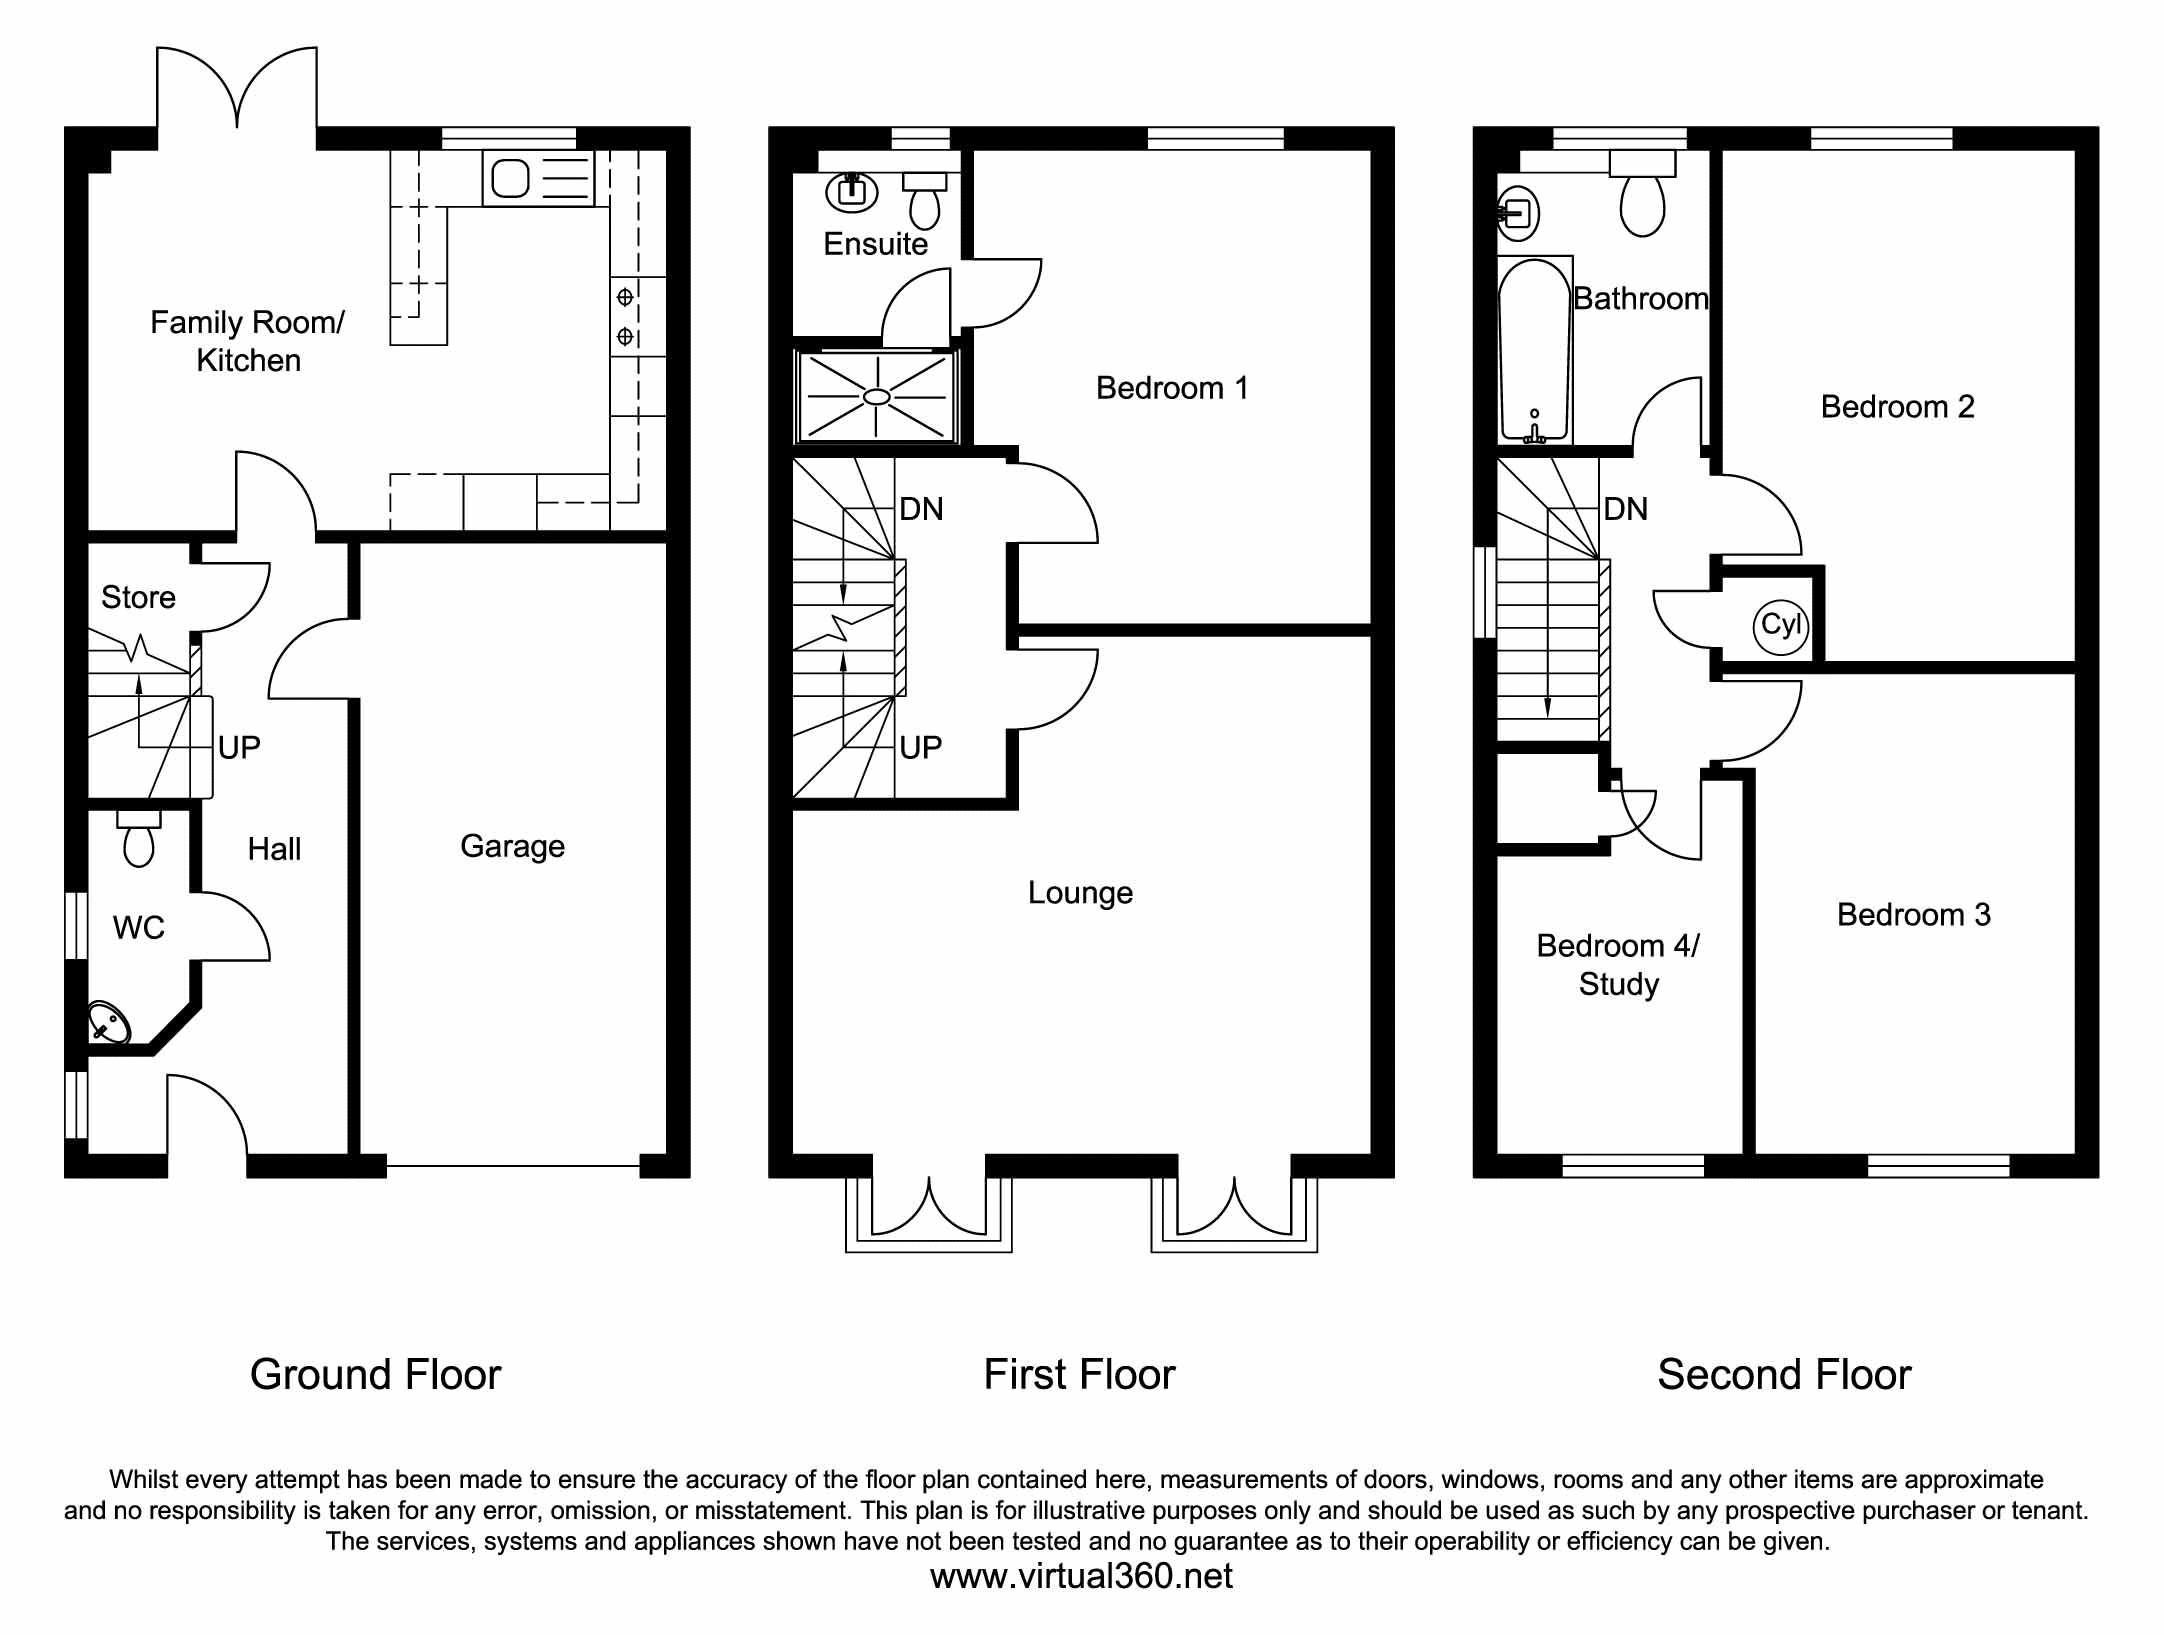 Bluehills Lane, Lower Cumberworth, Huddersfield floor plan